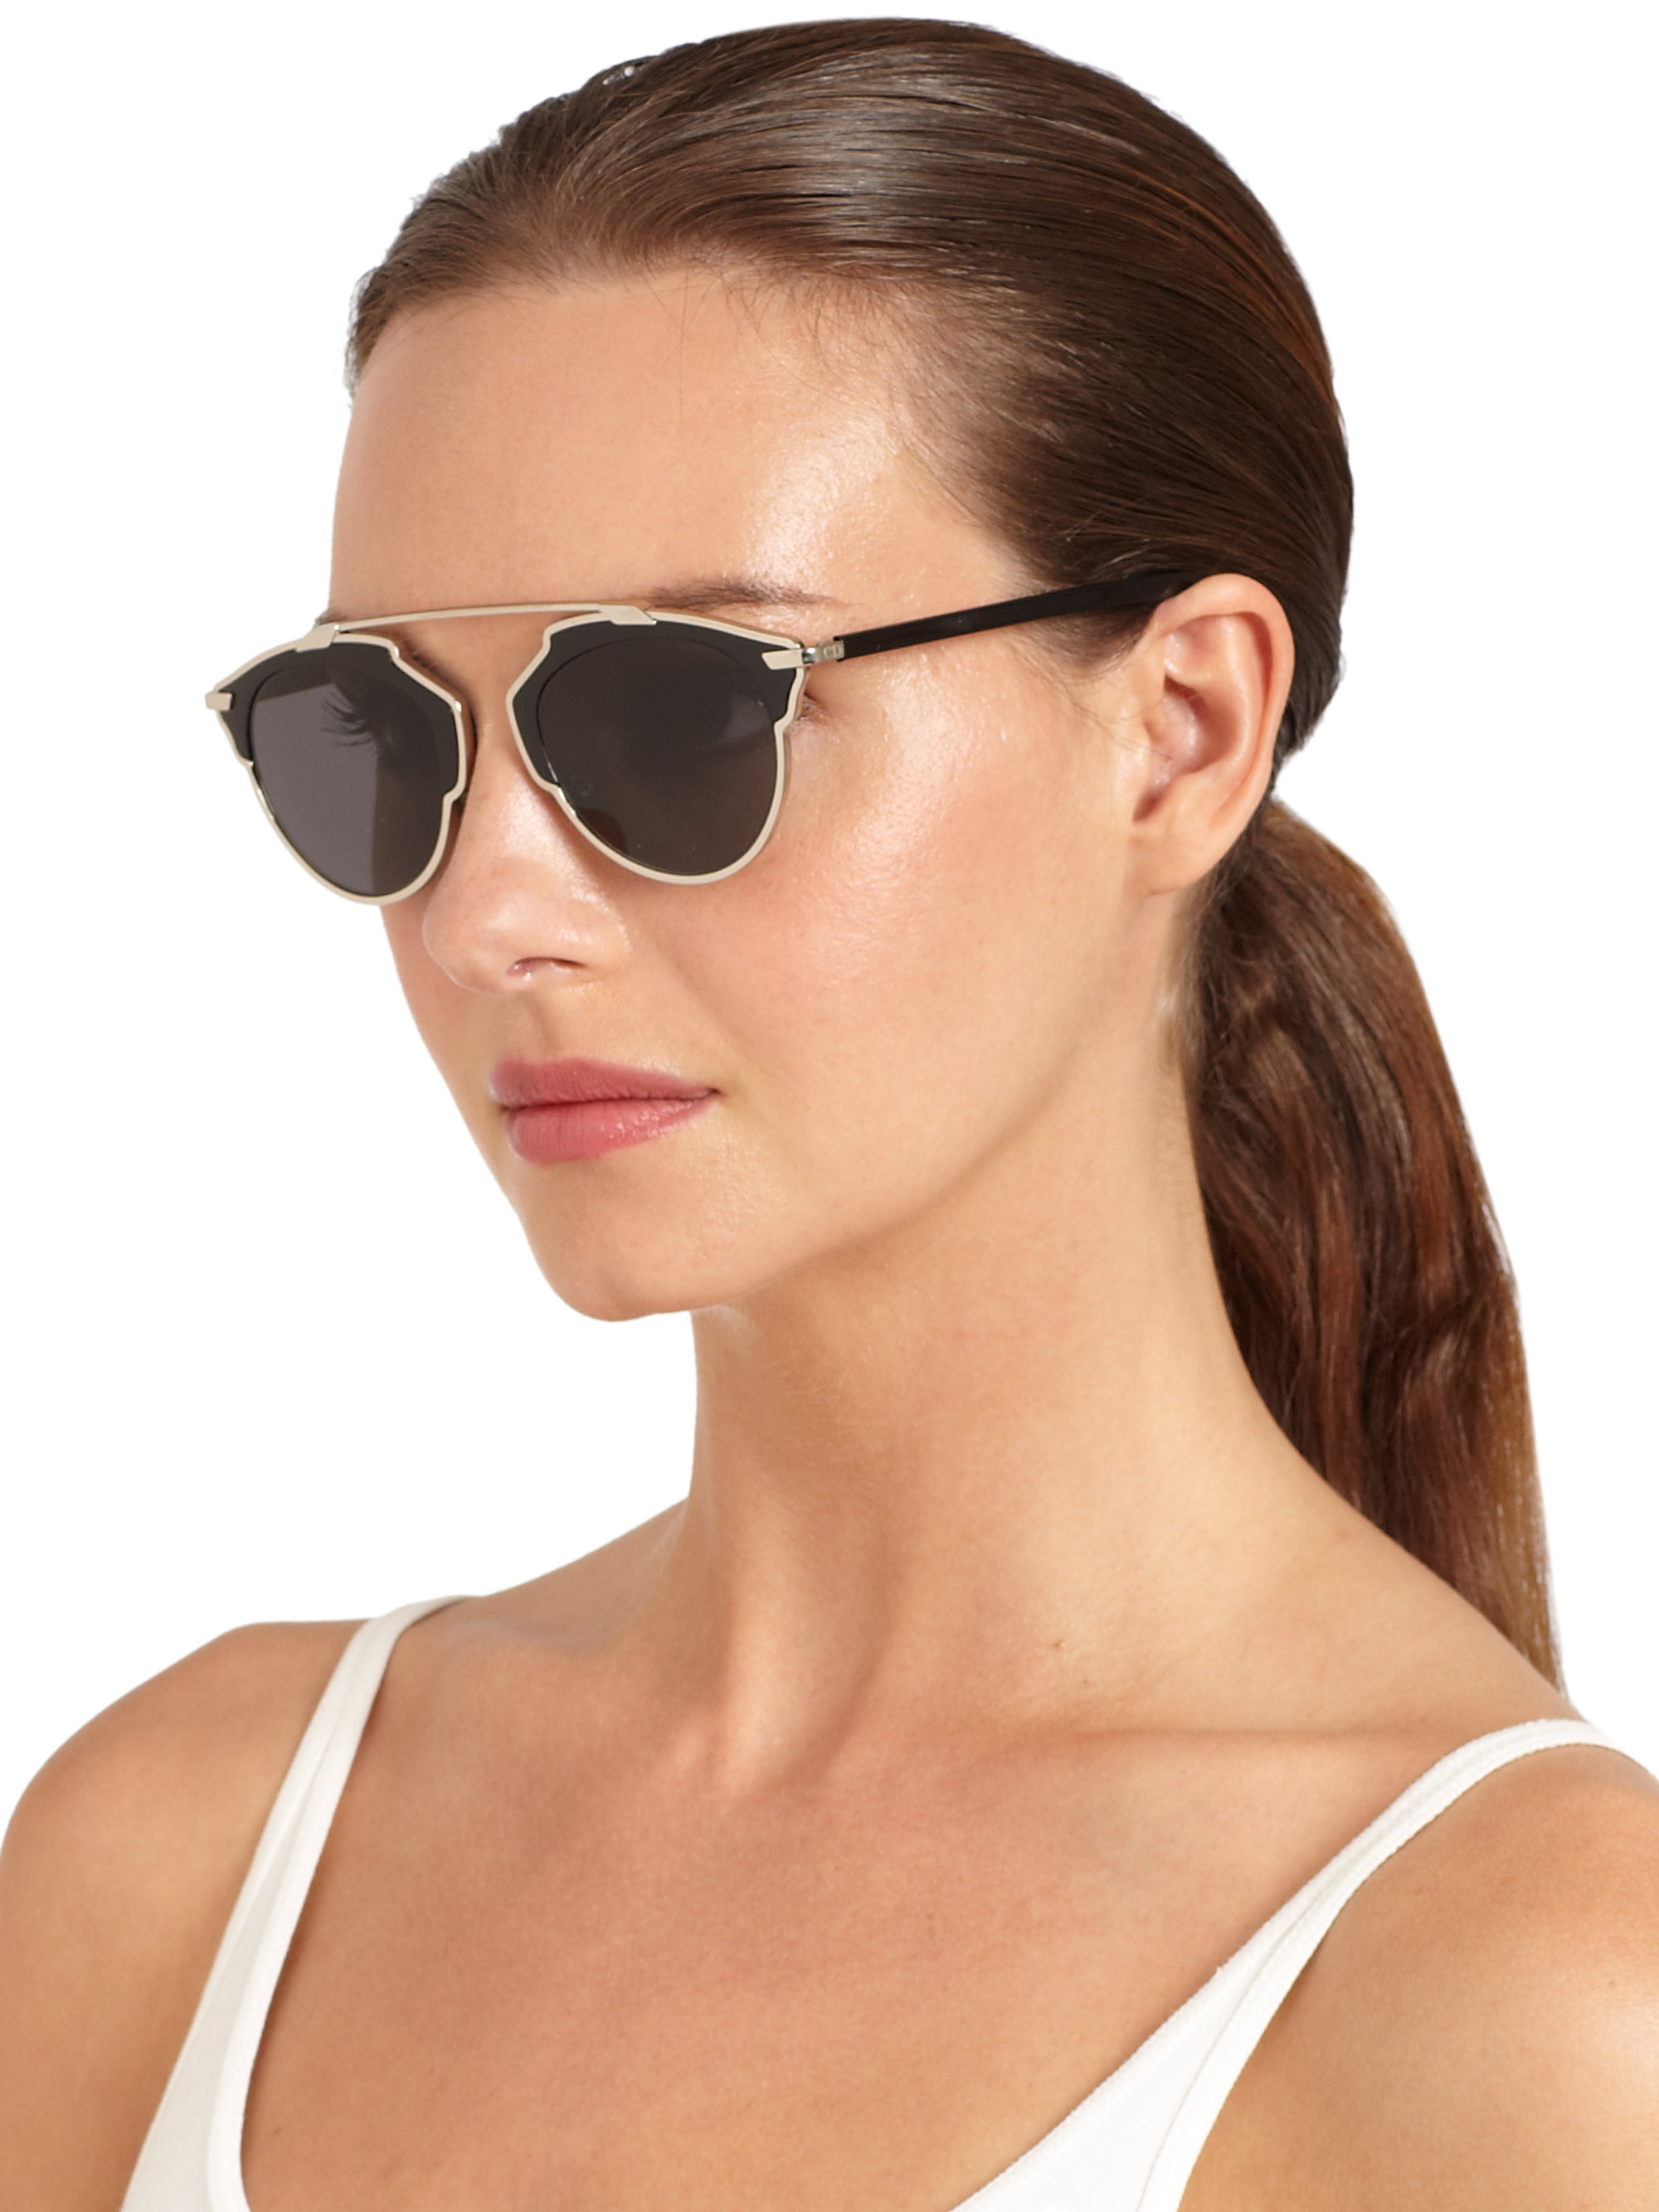 1332b12fc9 Dior So Real Sunglasses Black And Pink - Bitterroot Public Library